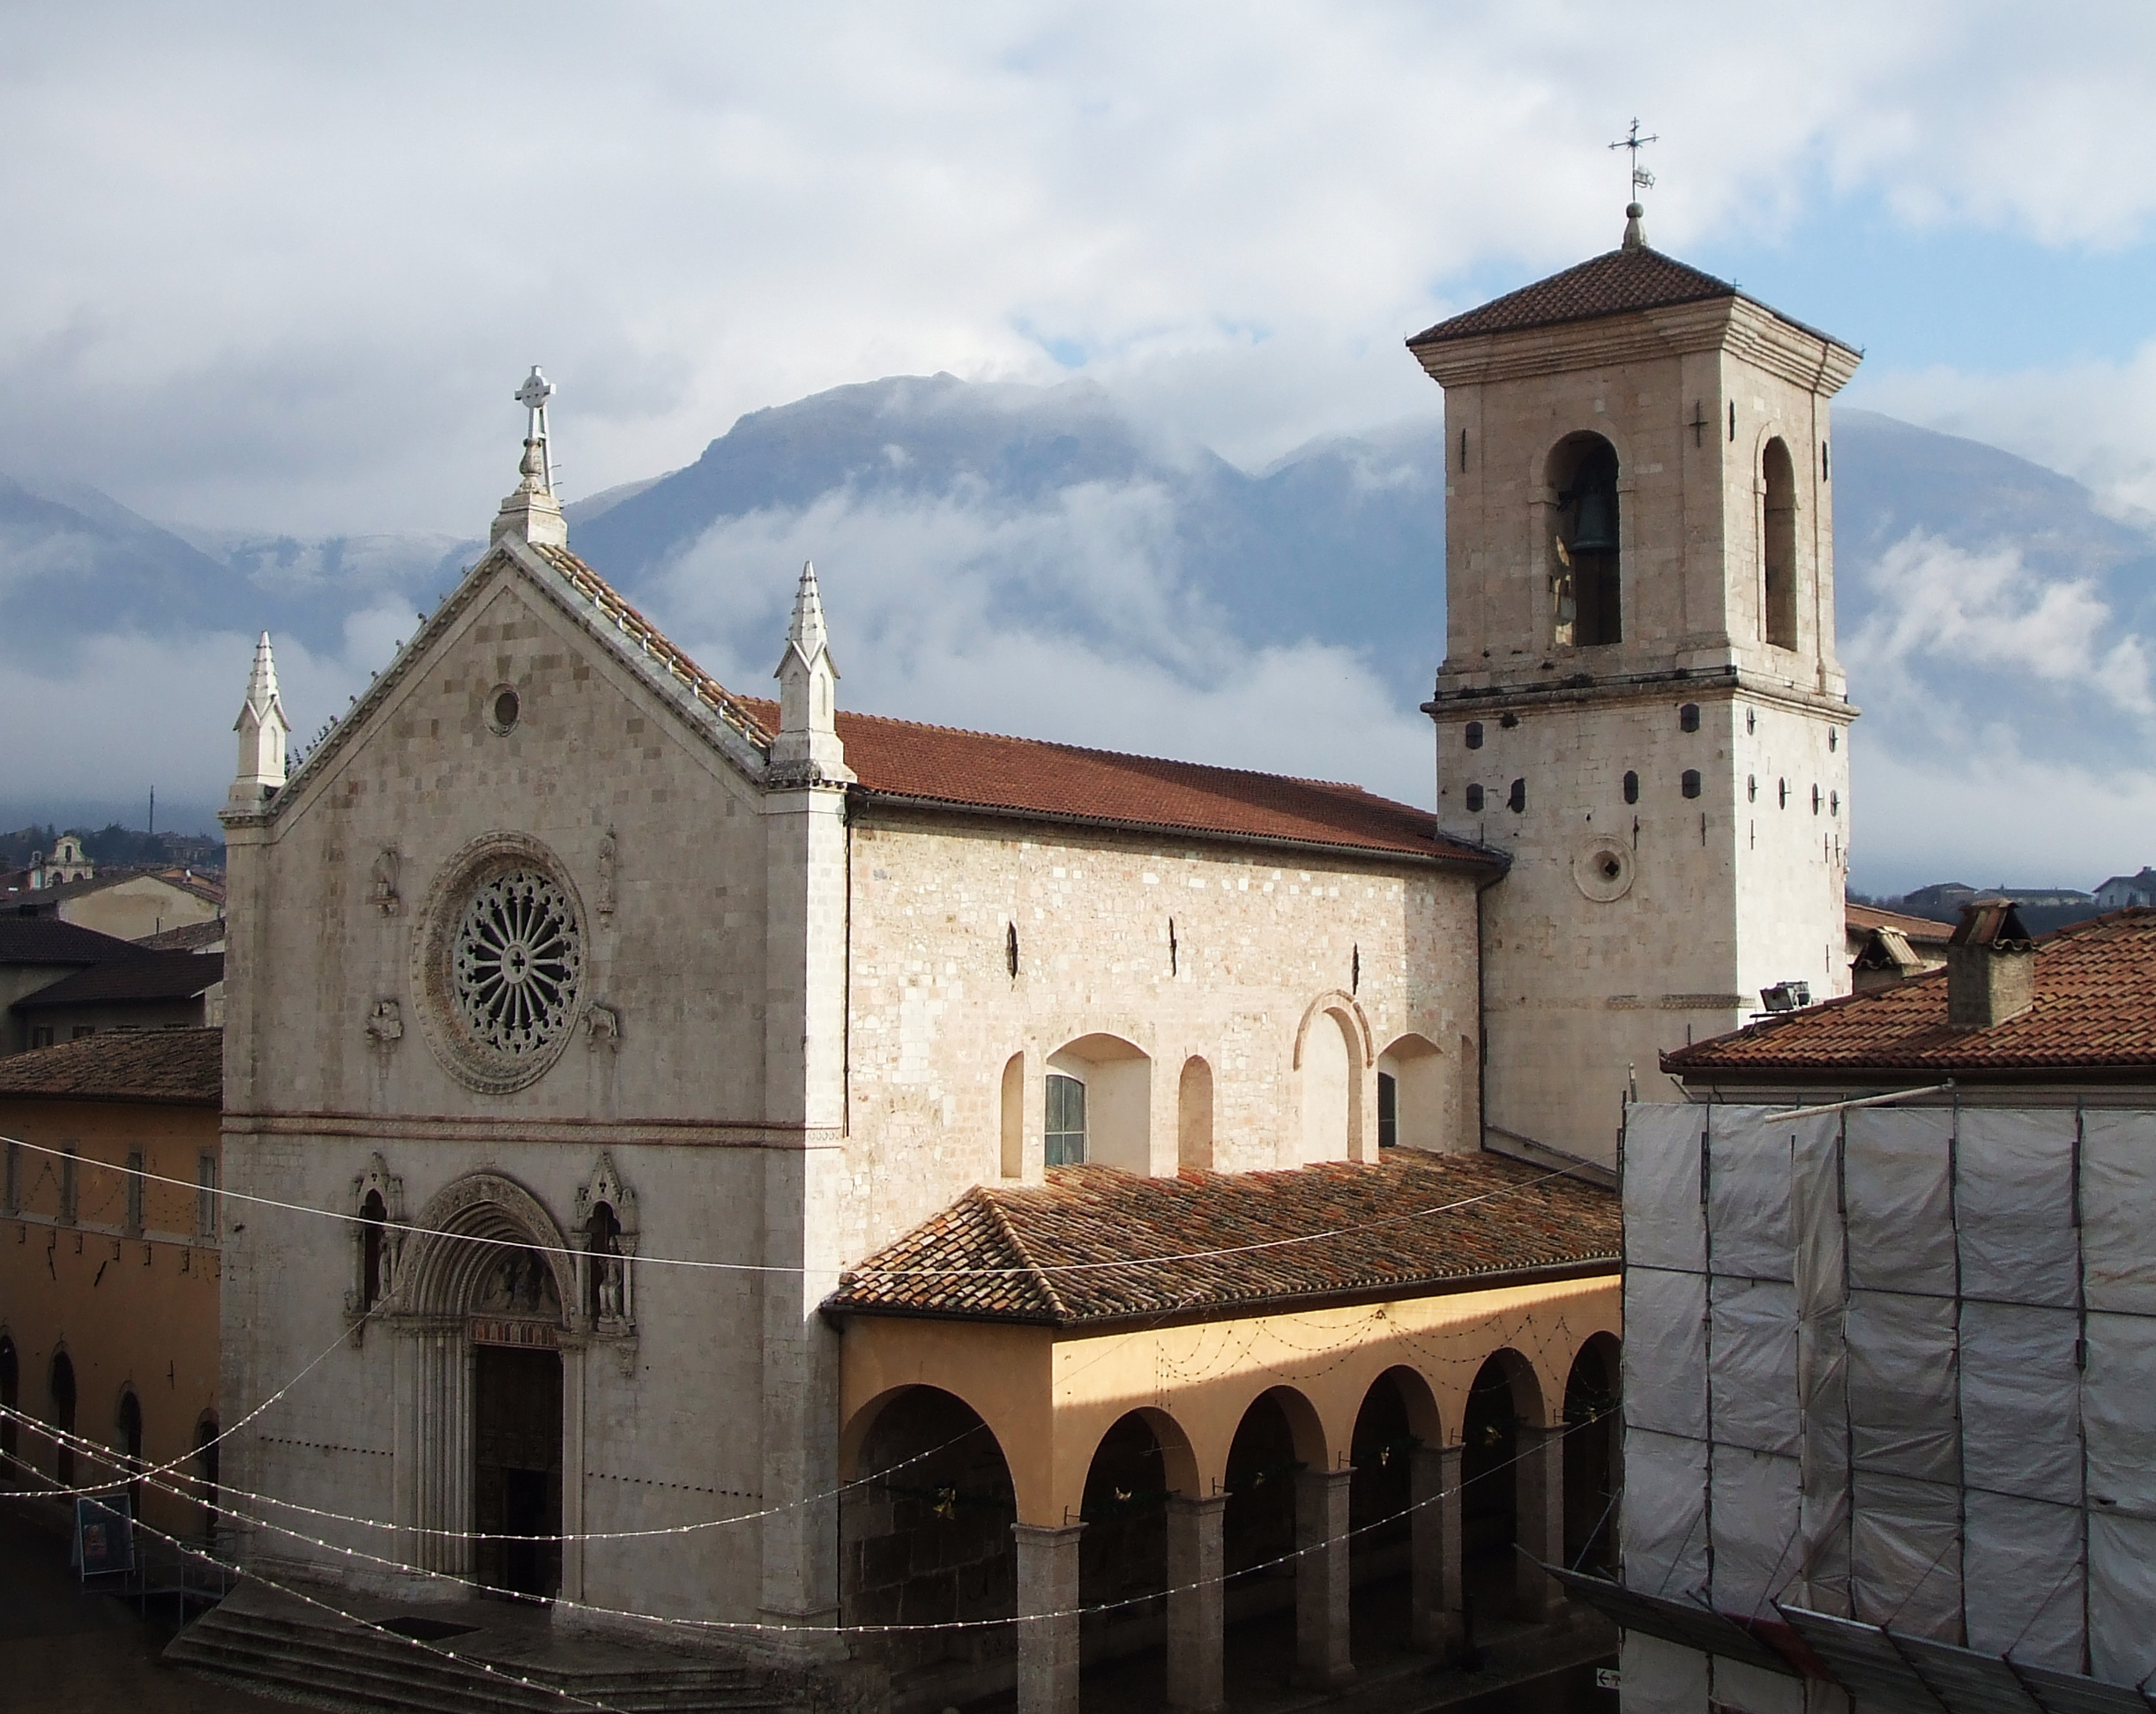 San Benedetto Church, Norcia — The Birthplace of Saint Benedict